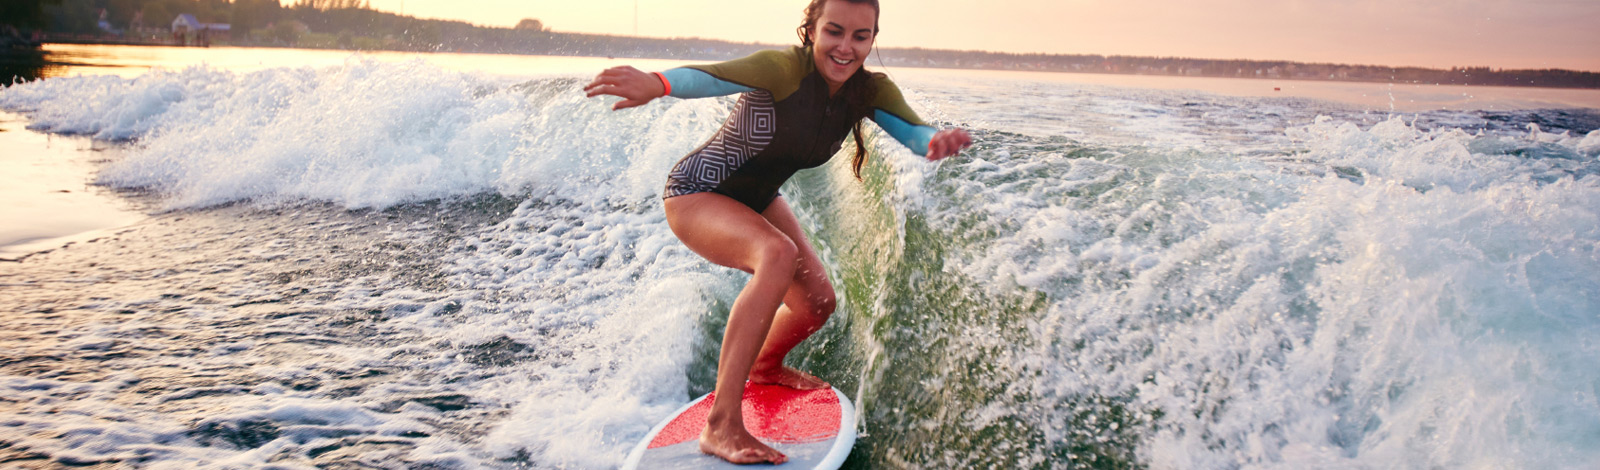 Surfing experience in Melbourne